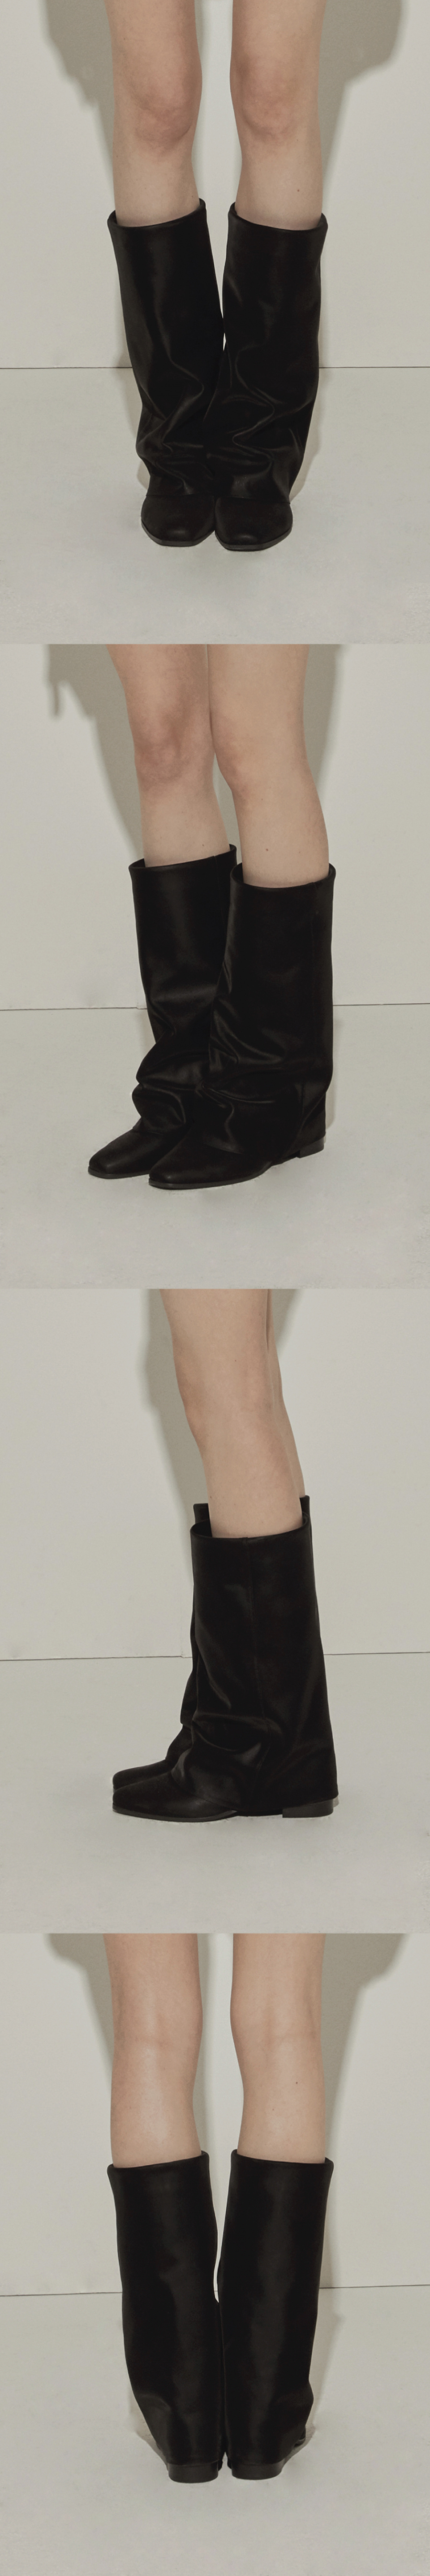 쓰리투에이티(THREE TO EIGHTY) Wrinkle Leather Boots (Black)